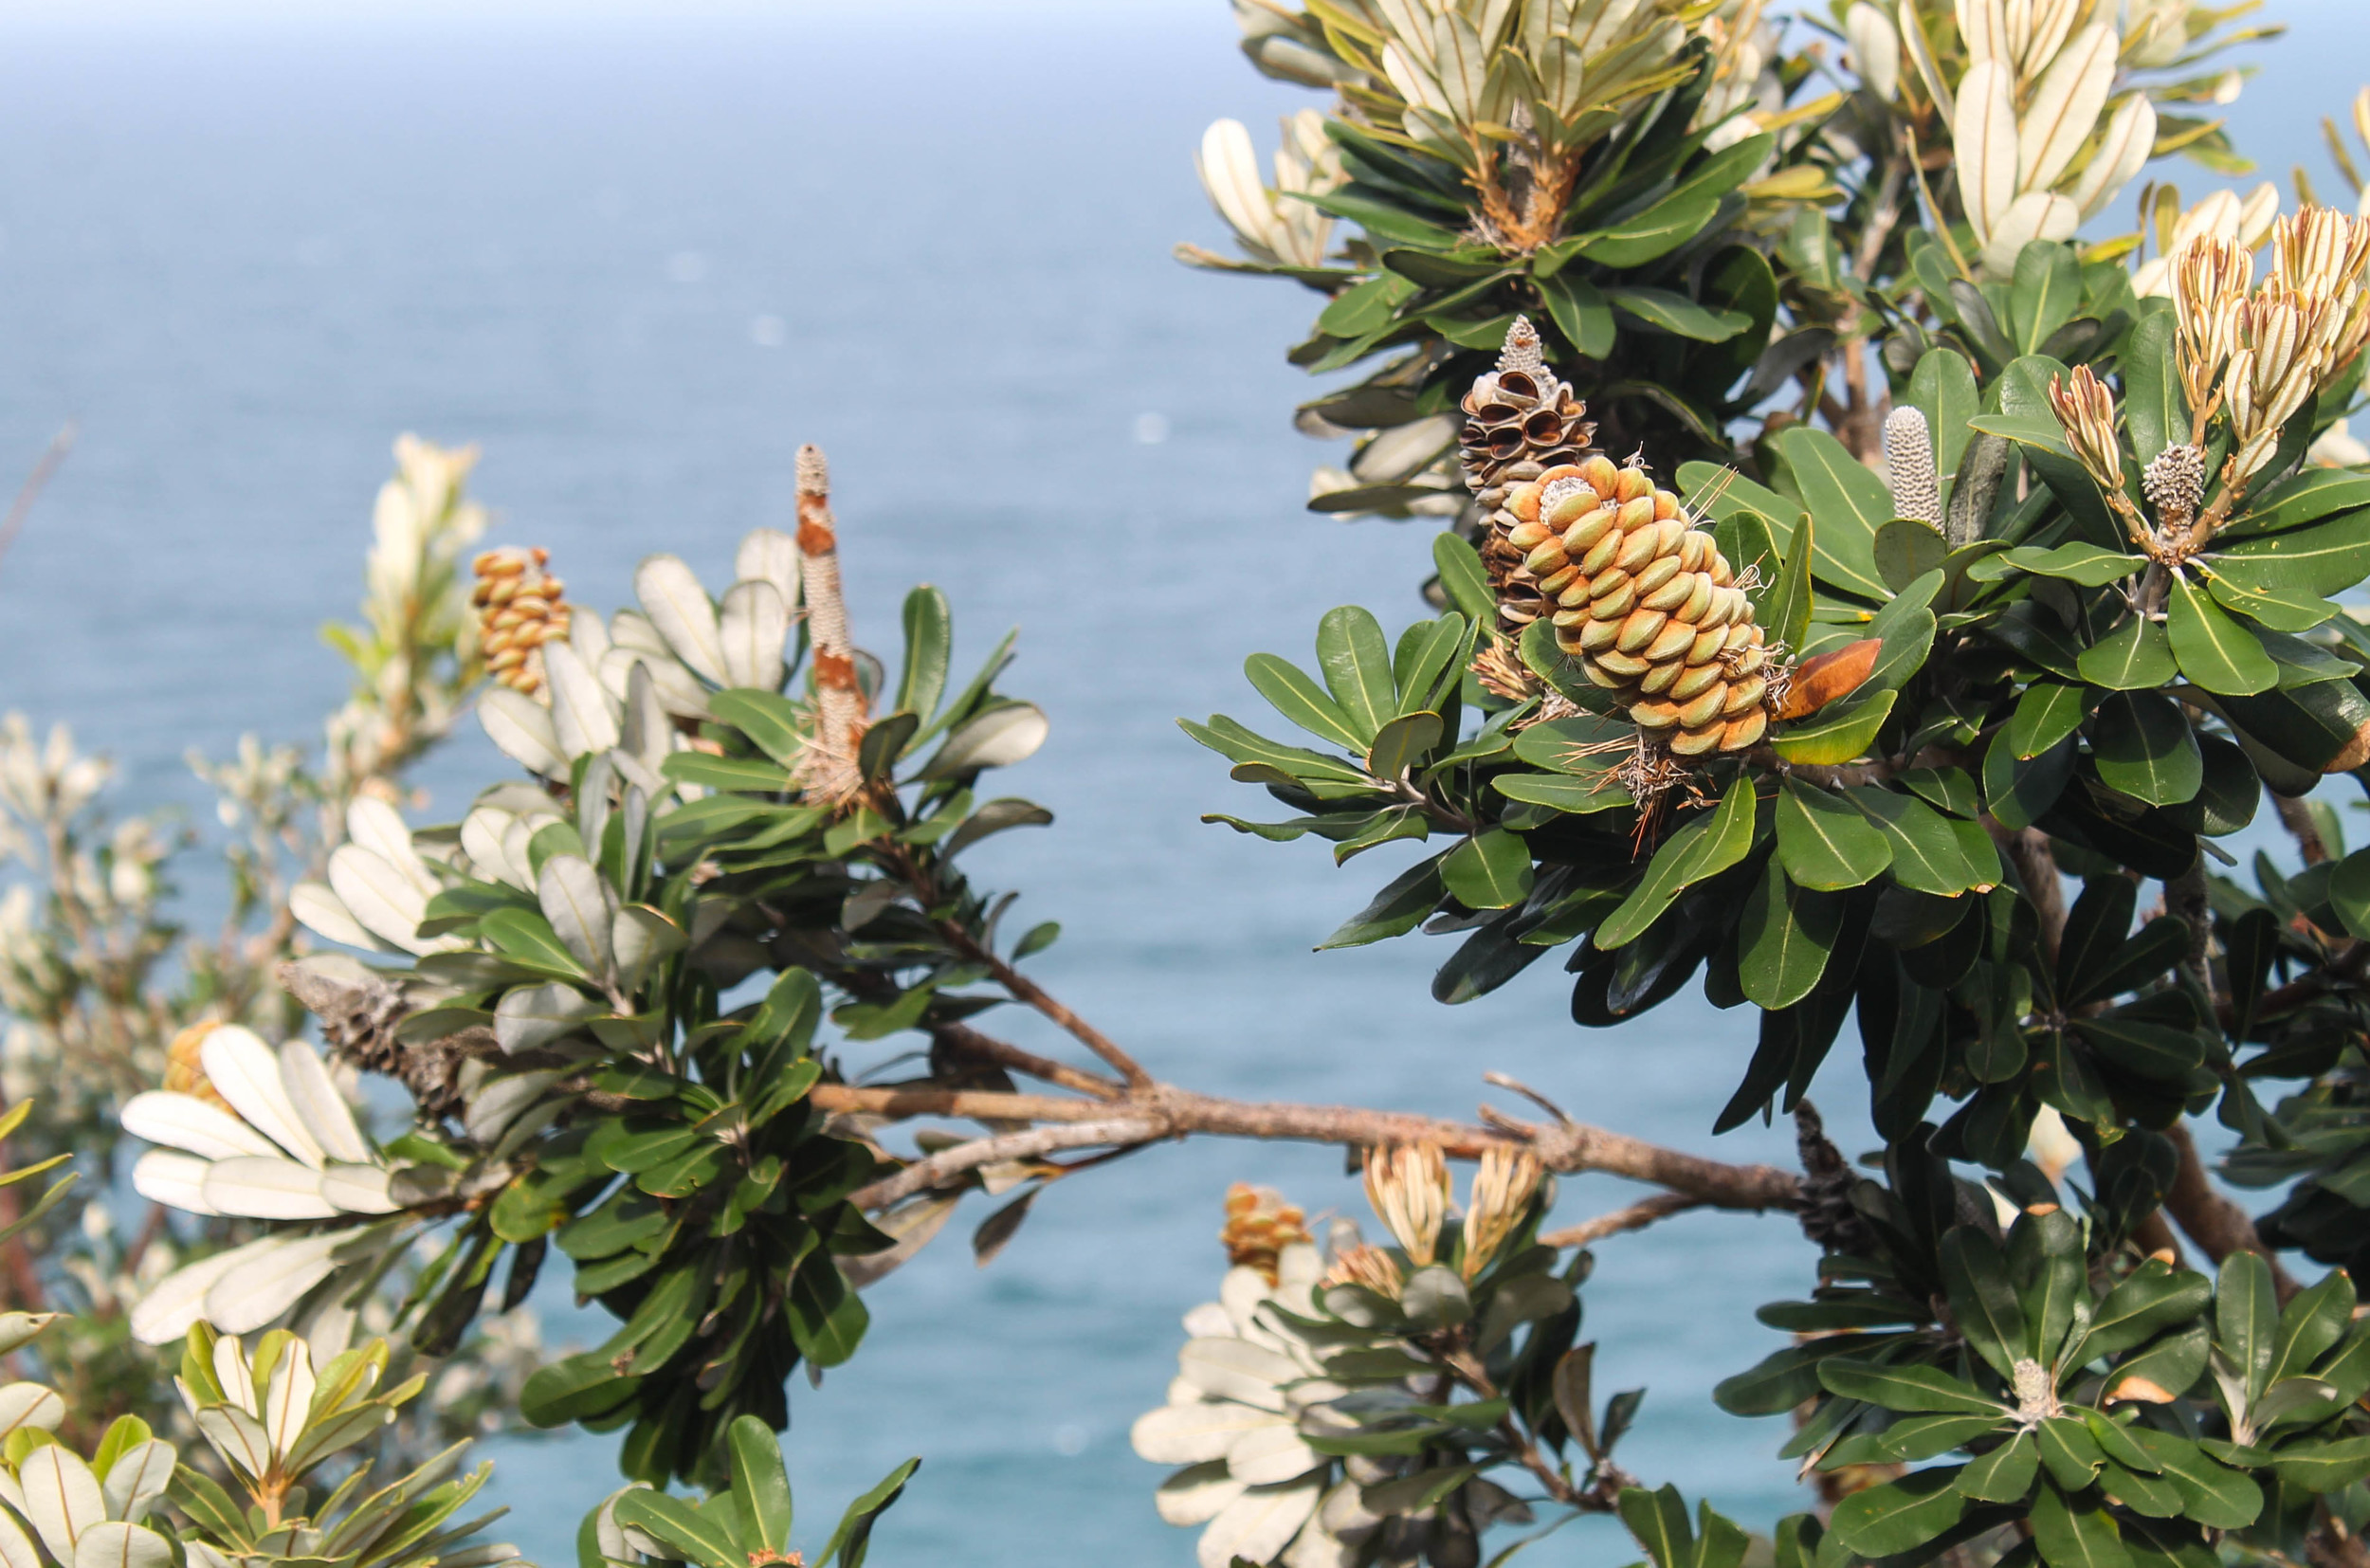 The local flora, which appears to be exotic pinecones.